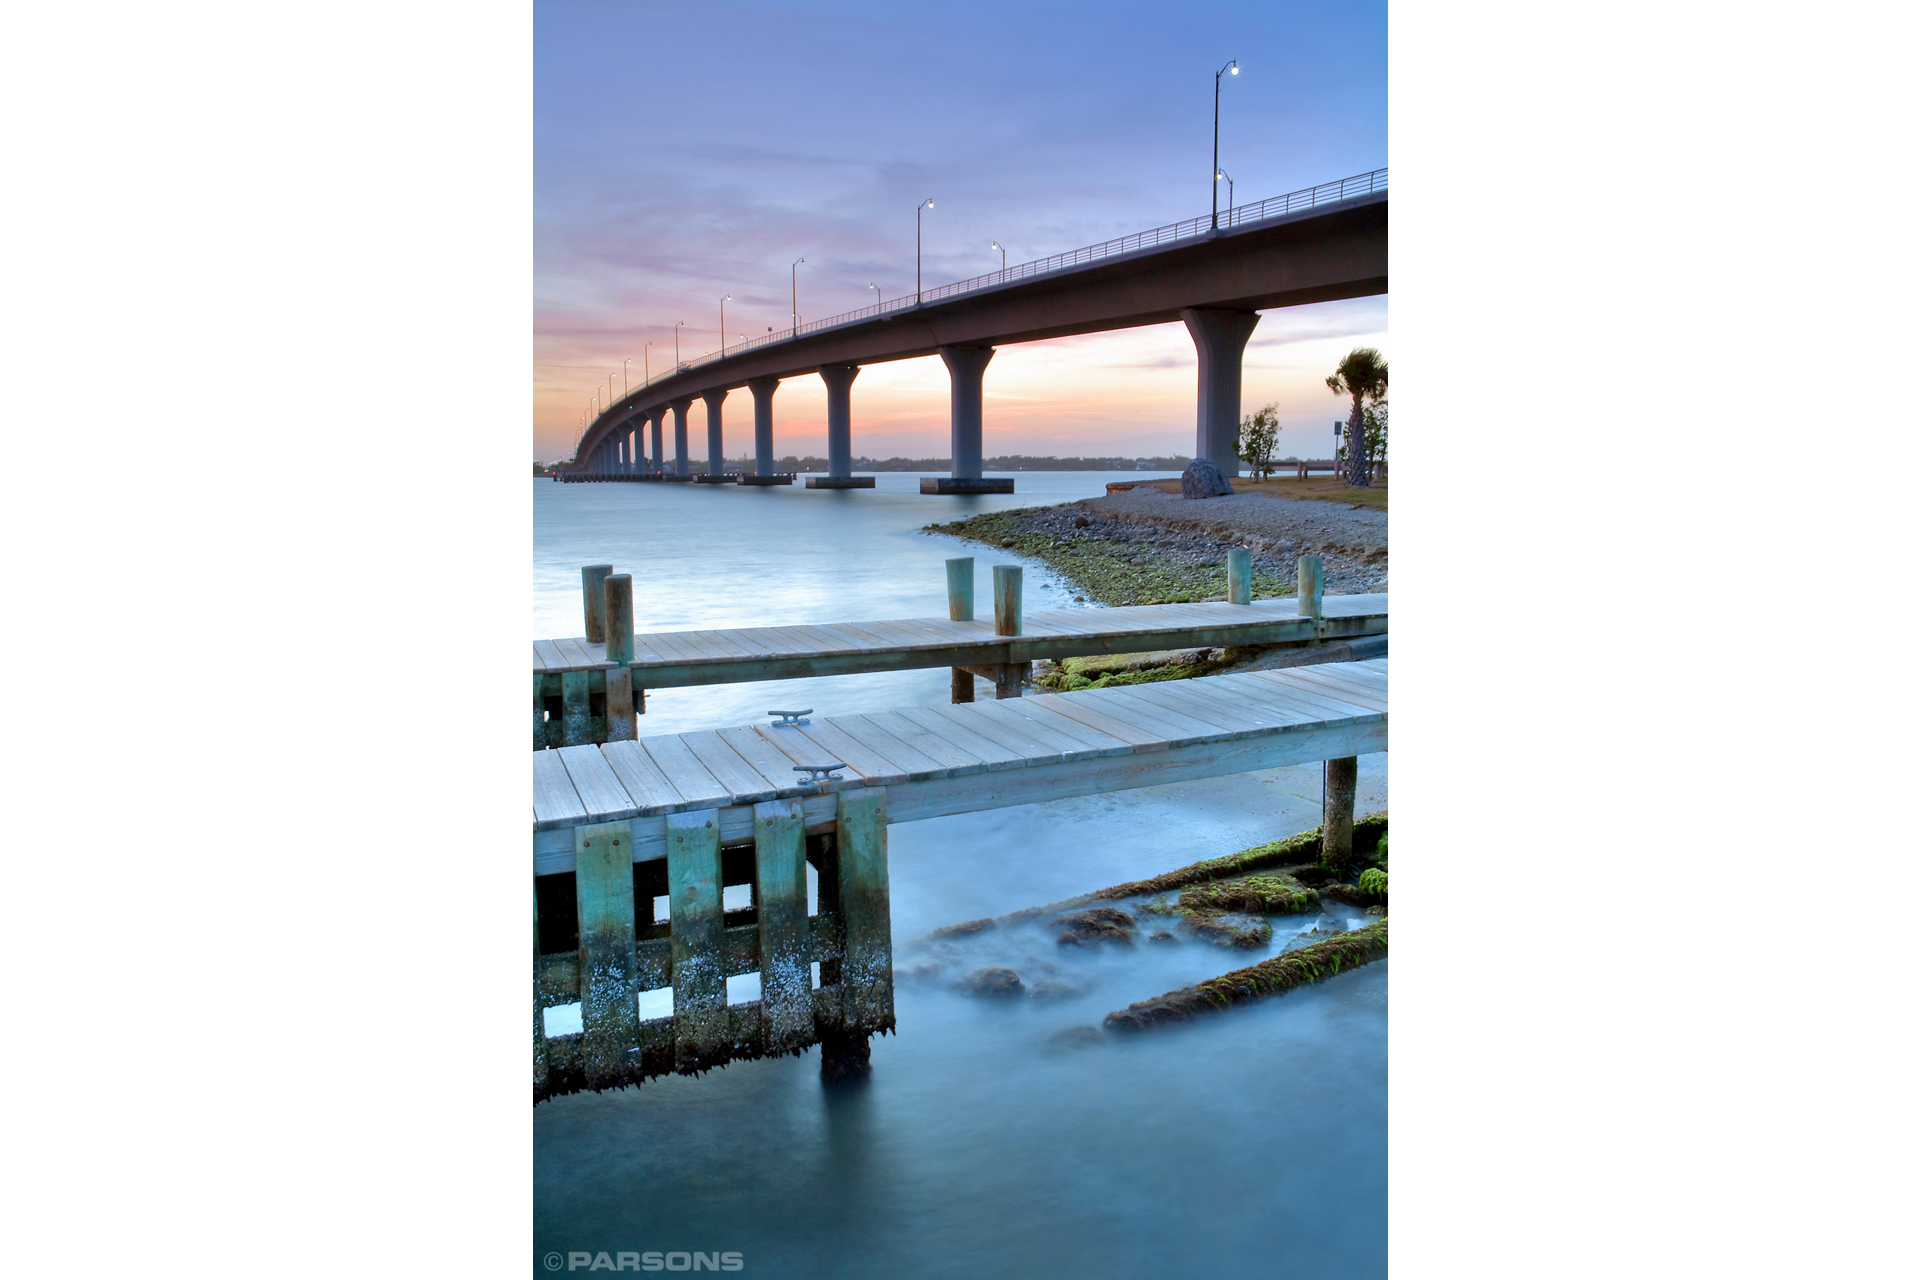 Civil-Engineering-Ernest-Lyons-Bridge-Stuart-Florida-Sunset-1.jpg